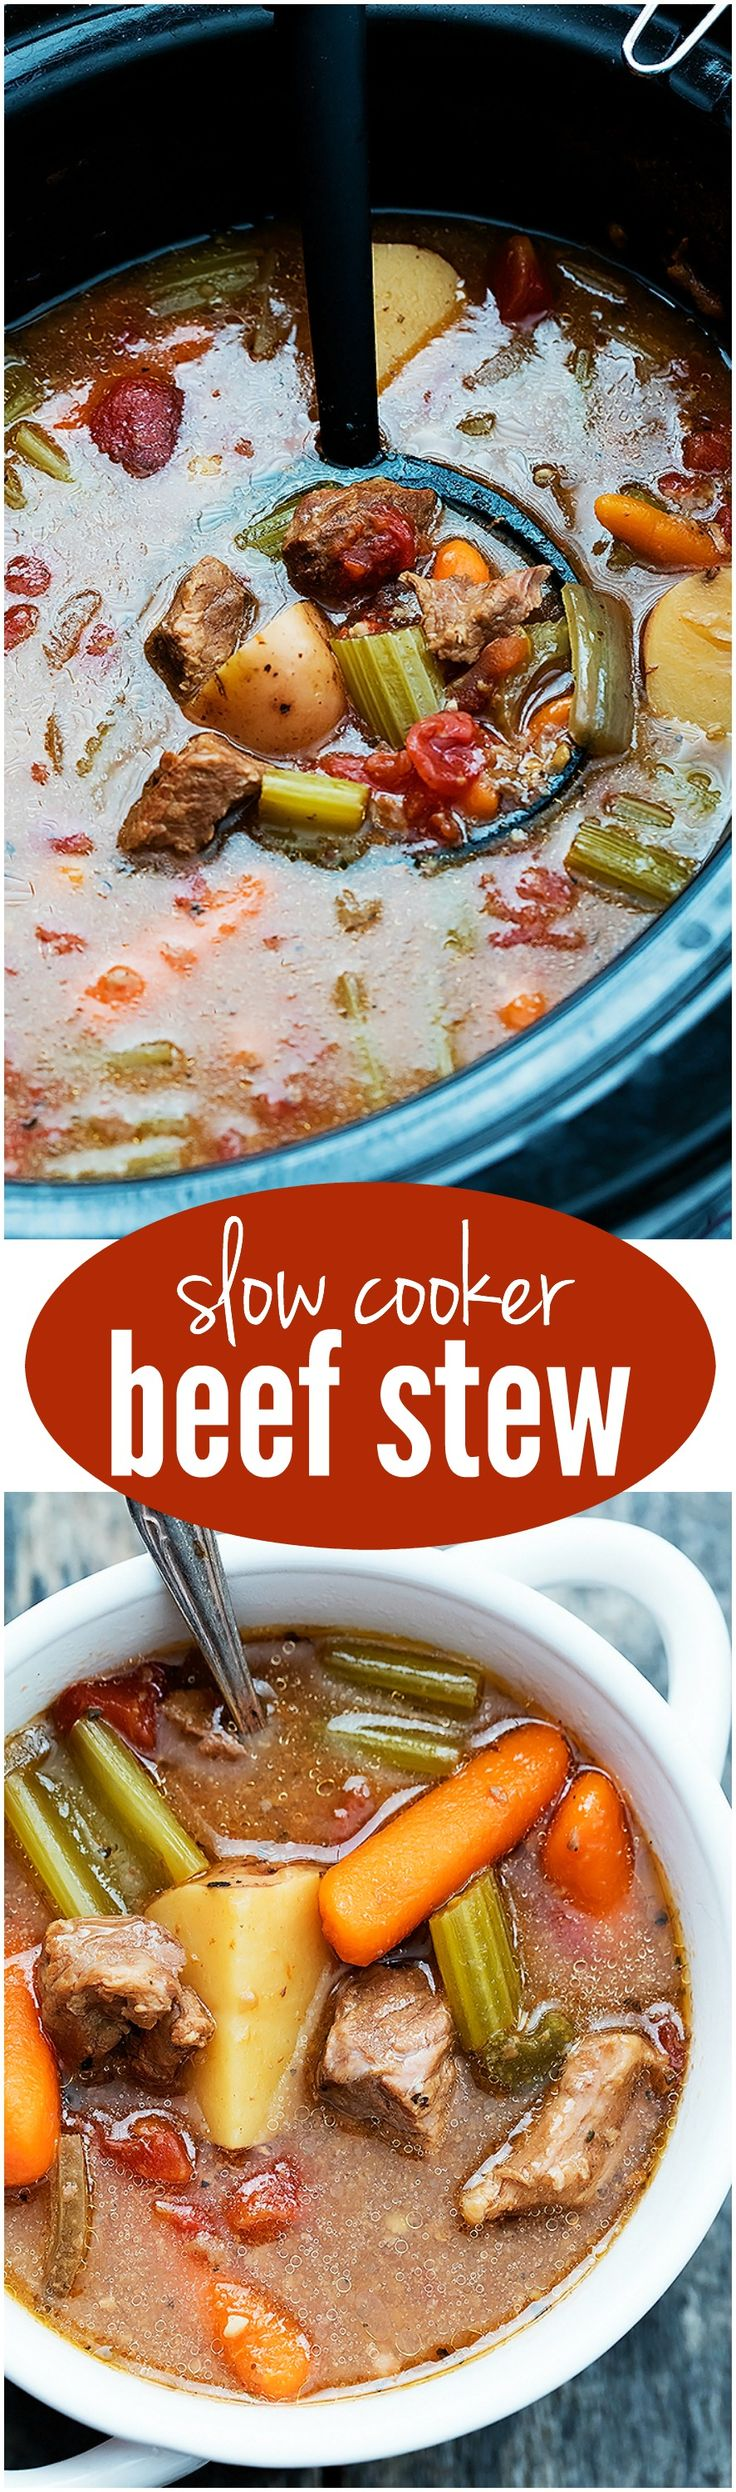 This Slow Cooker Beef Stew is easy and full of beef and veggies and perfect for the cold weather!